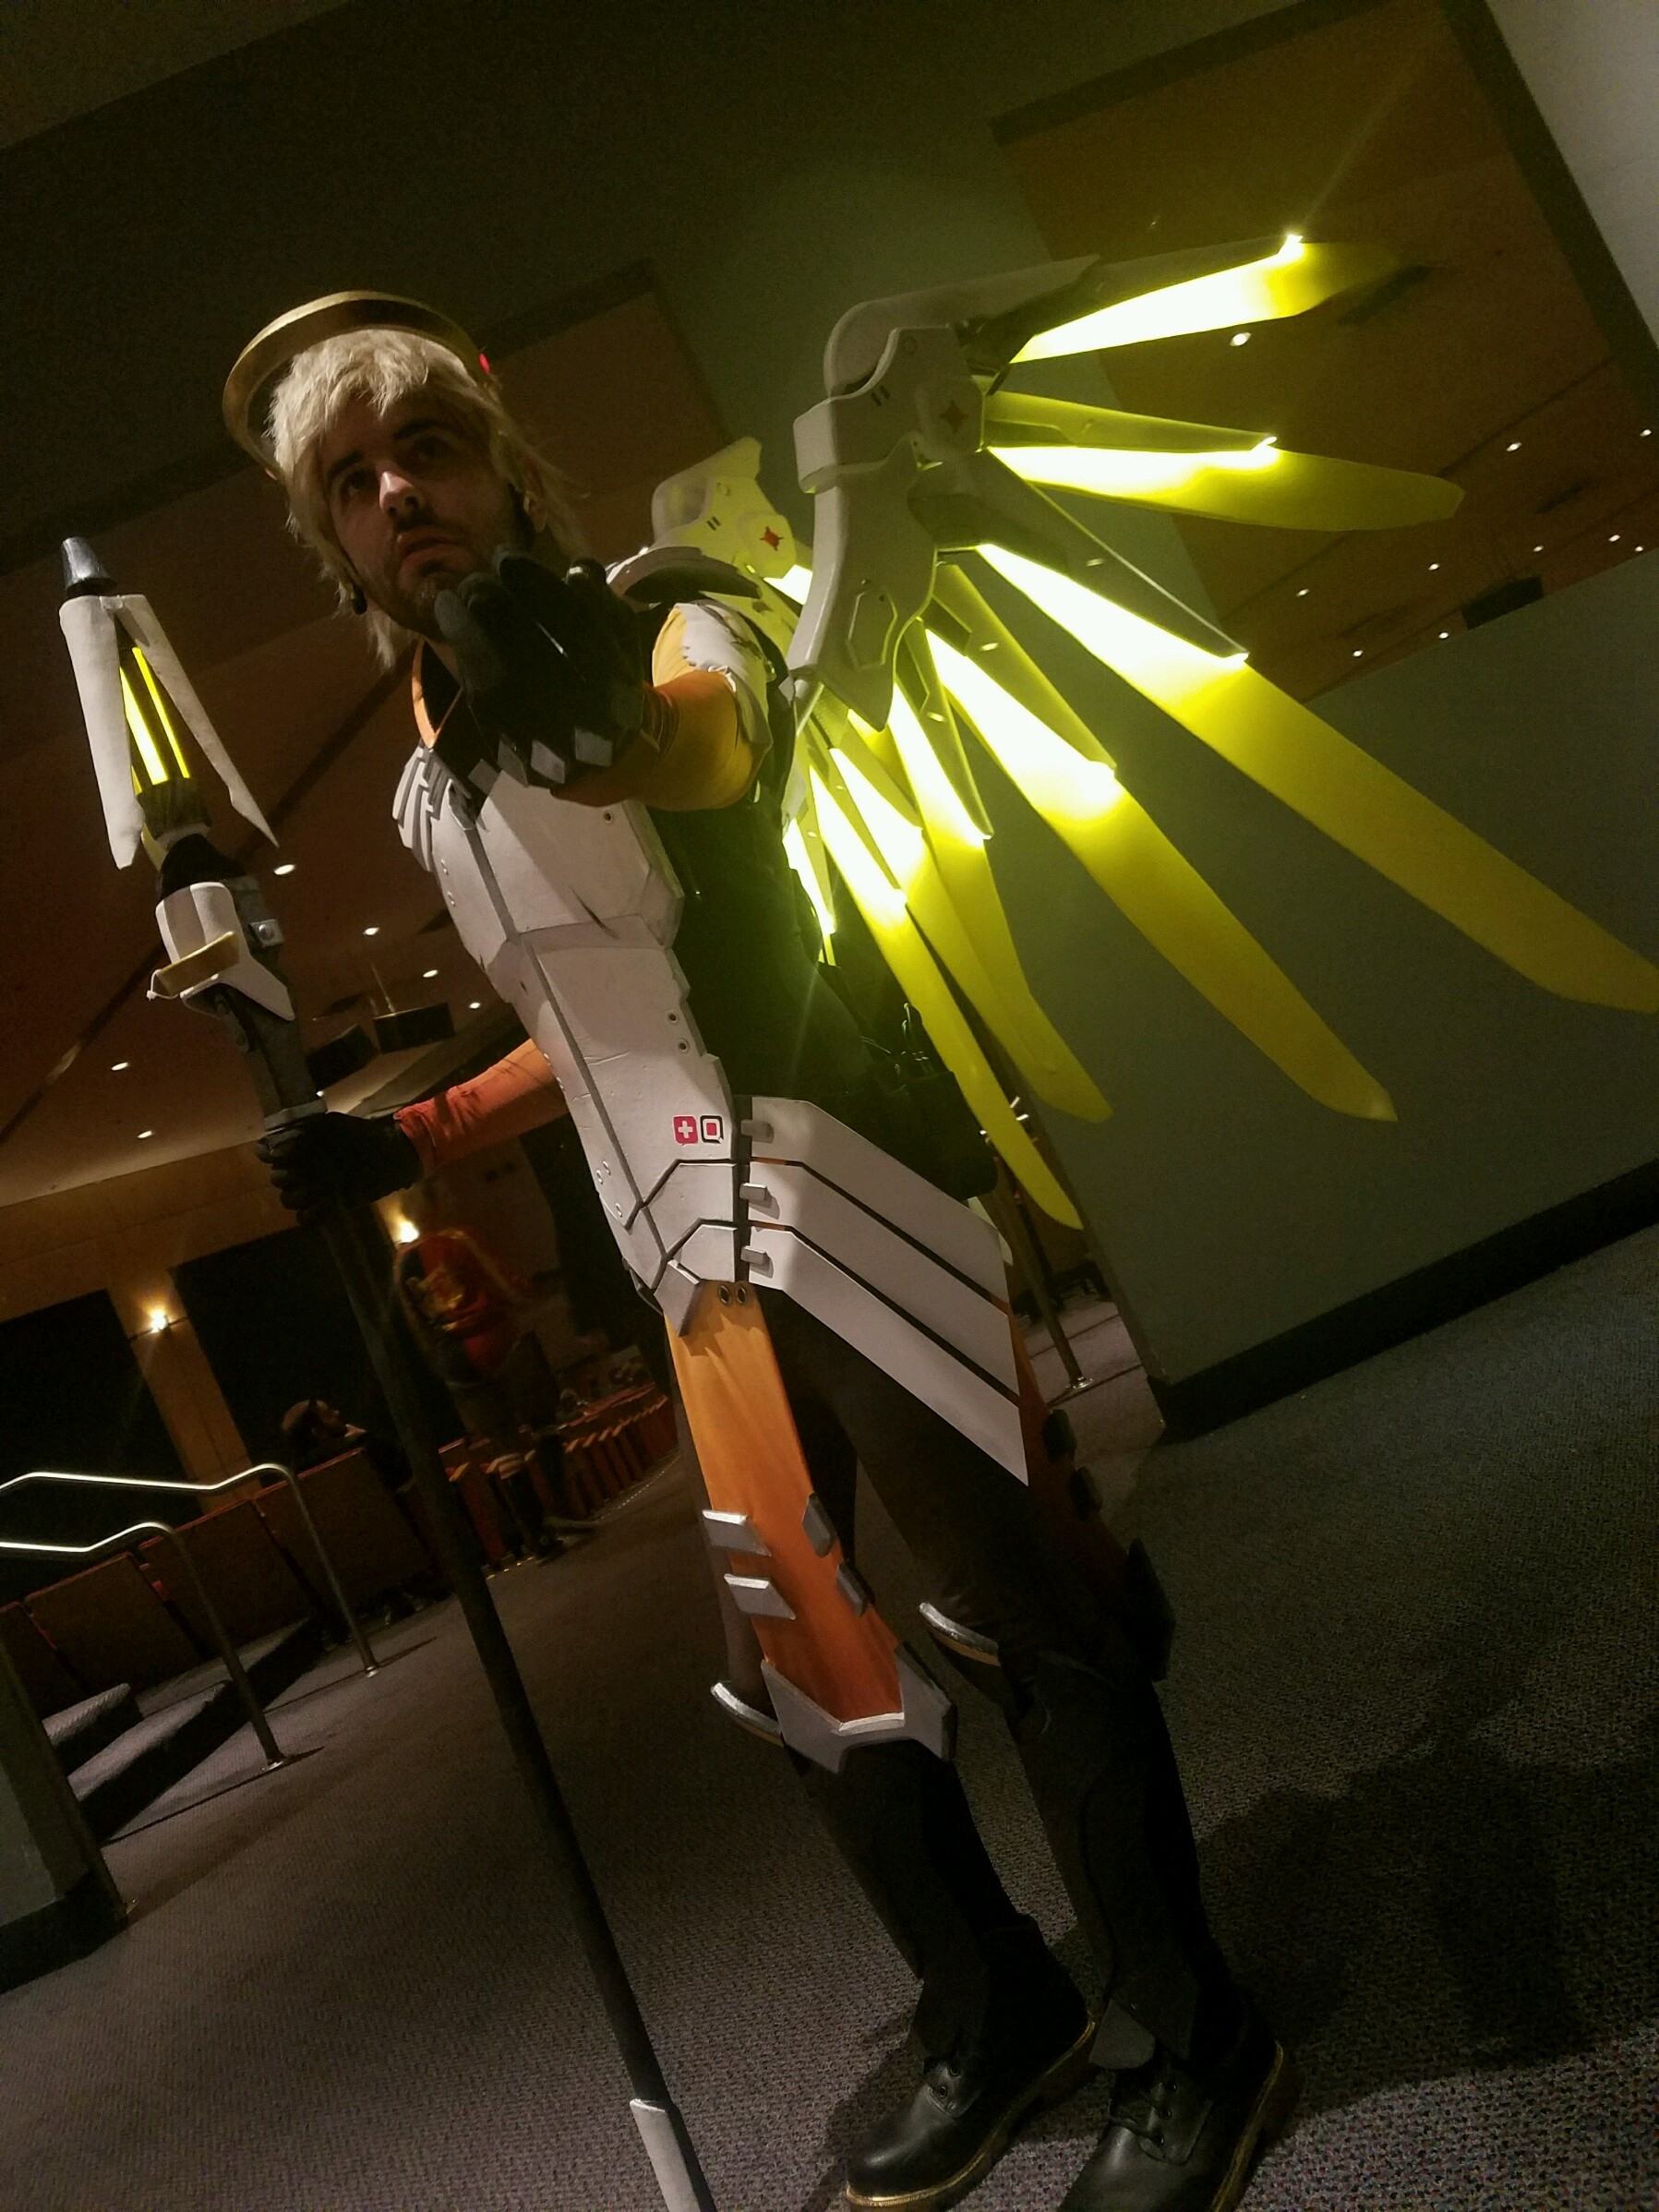 Genderbent Overwatch Mercy Cosplay with Glowing Wings ...